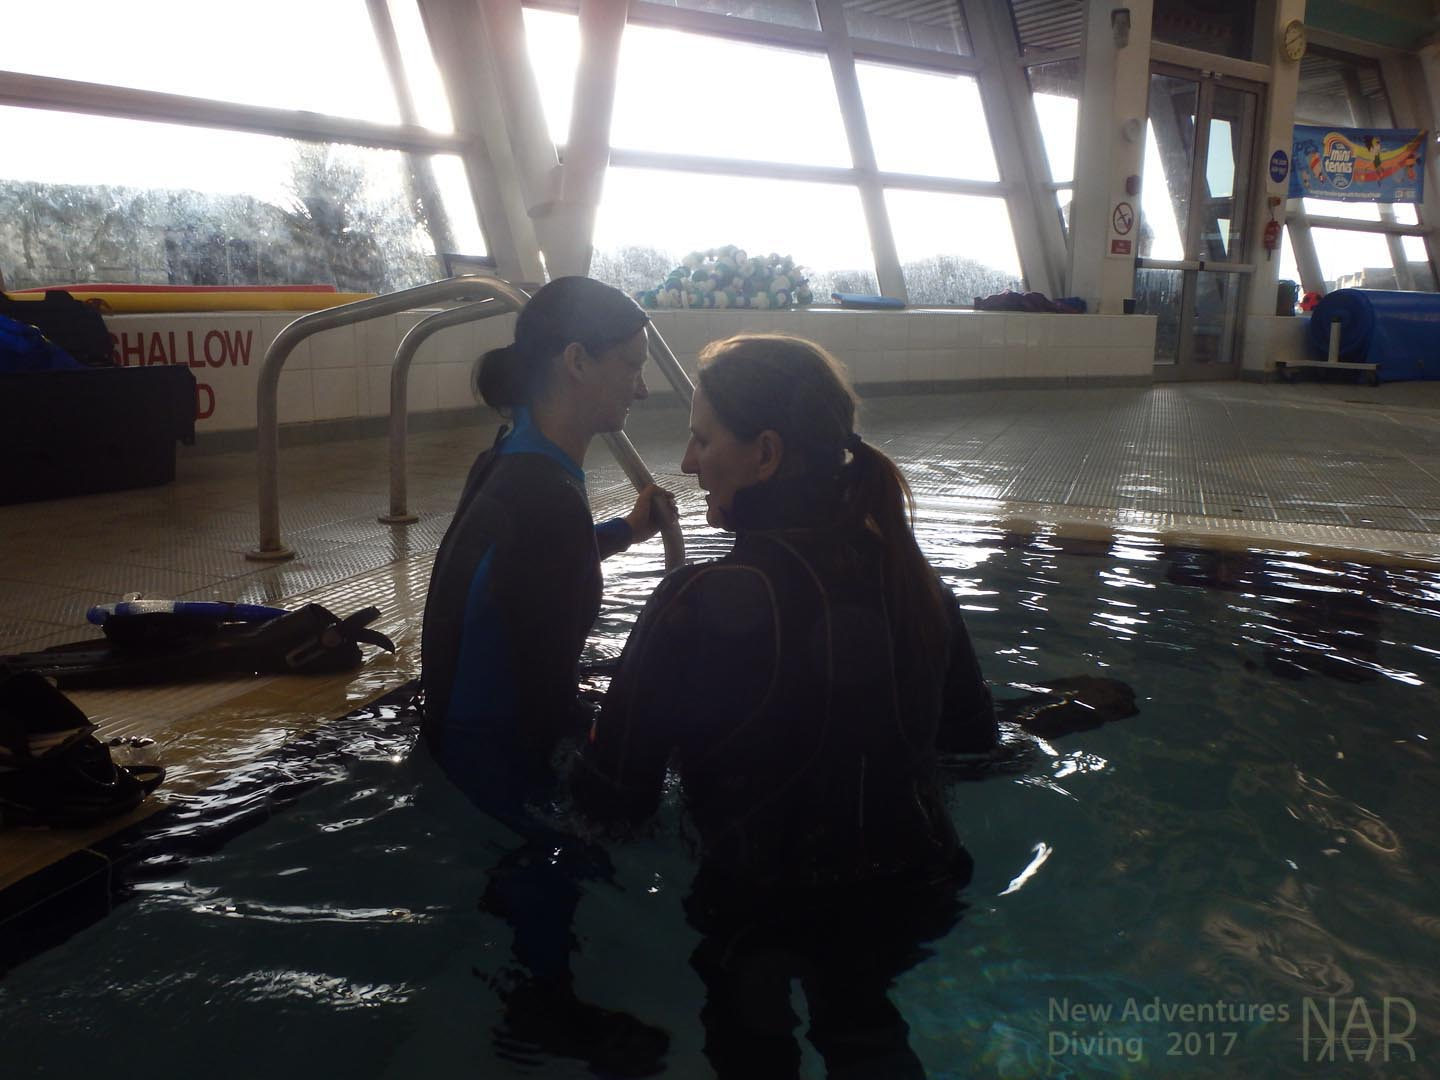 Learning to scuba dive at a pool session in Crosby, Merseyside.